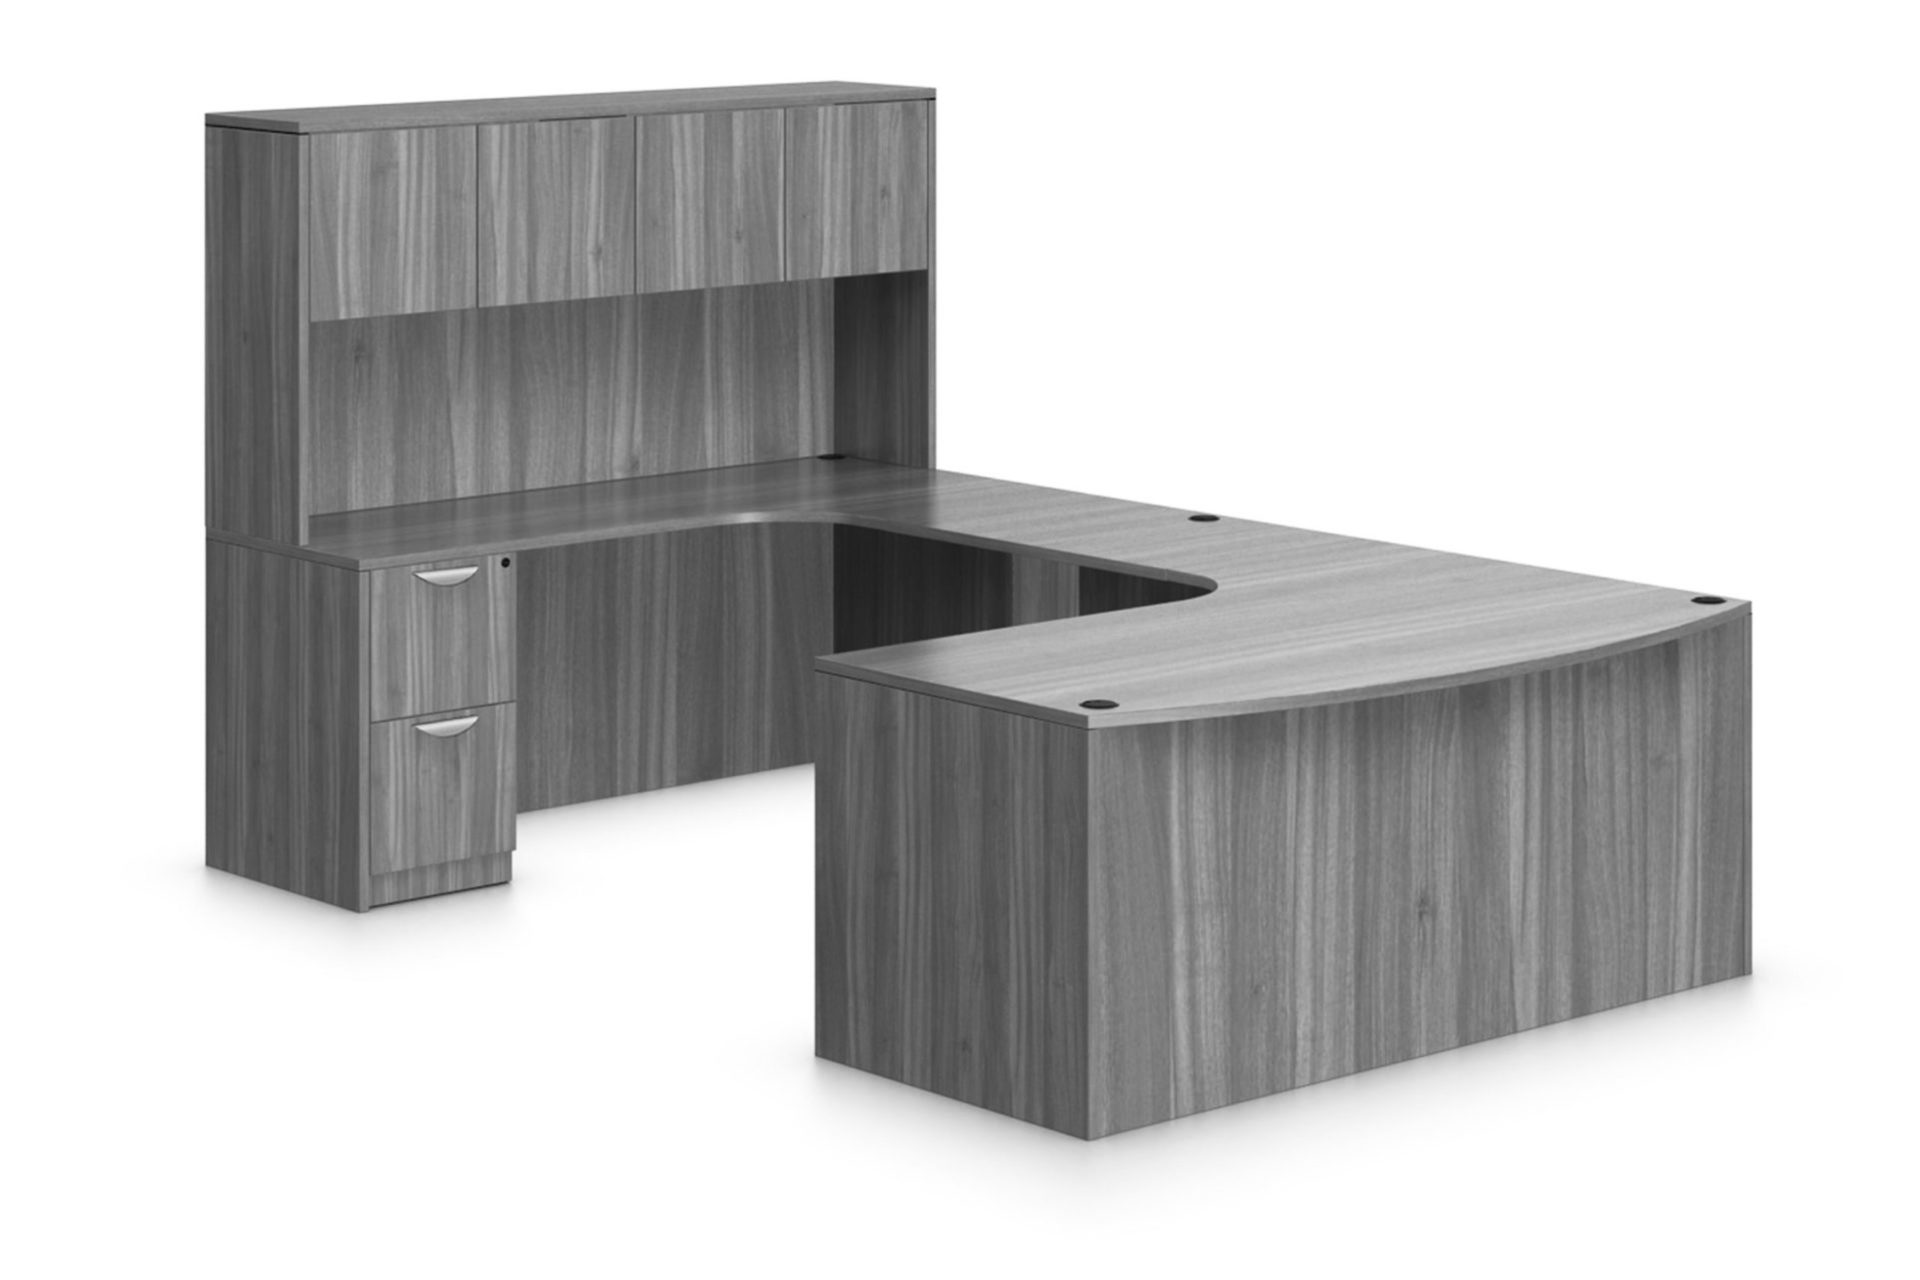 warren-series-u-shaped-bow-front-laminate-desks-with-rounded-corners-overhead-storage